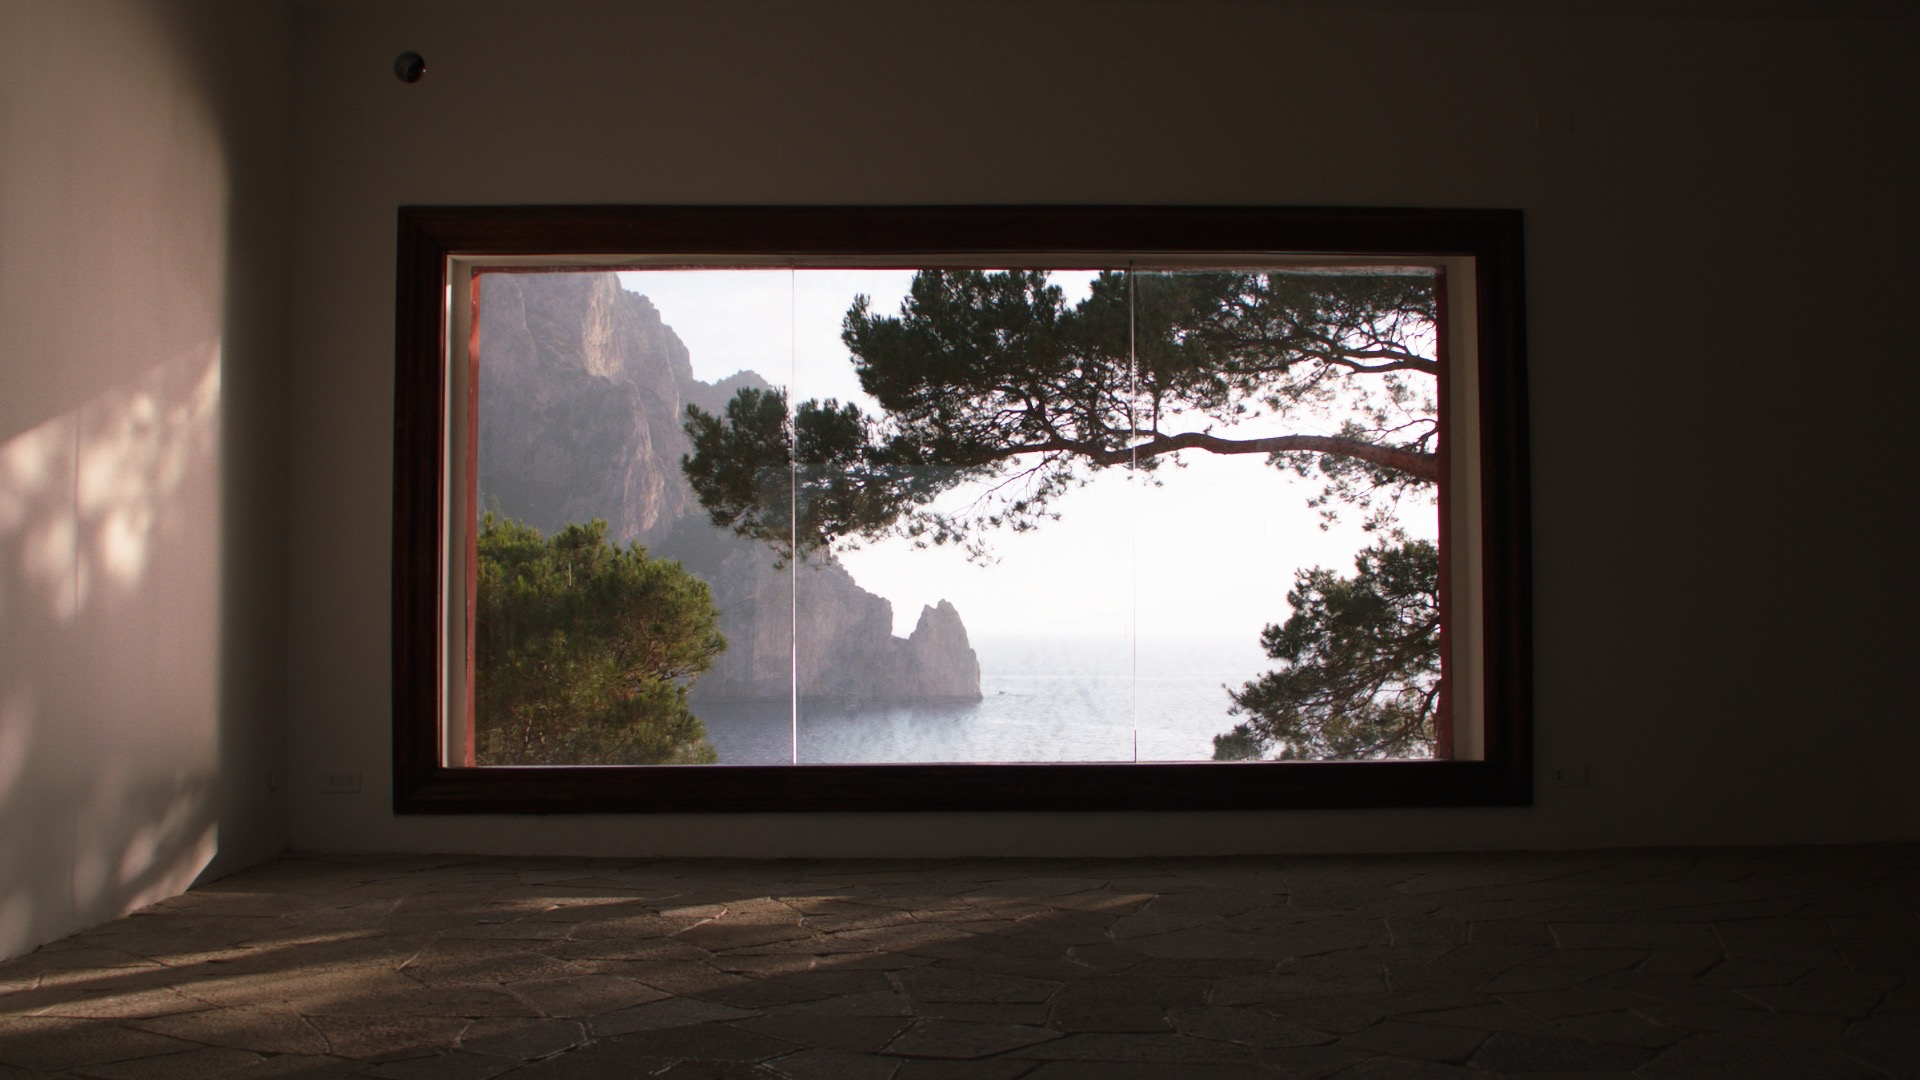 The windows are built in size and position to frame the beauty of the outdoors.